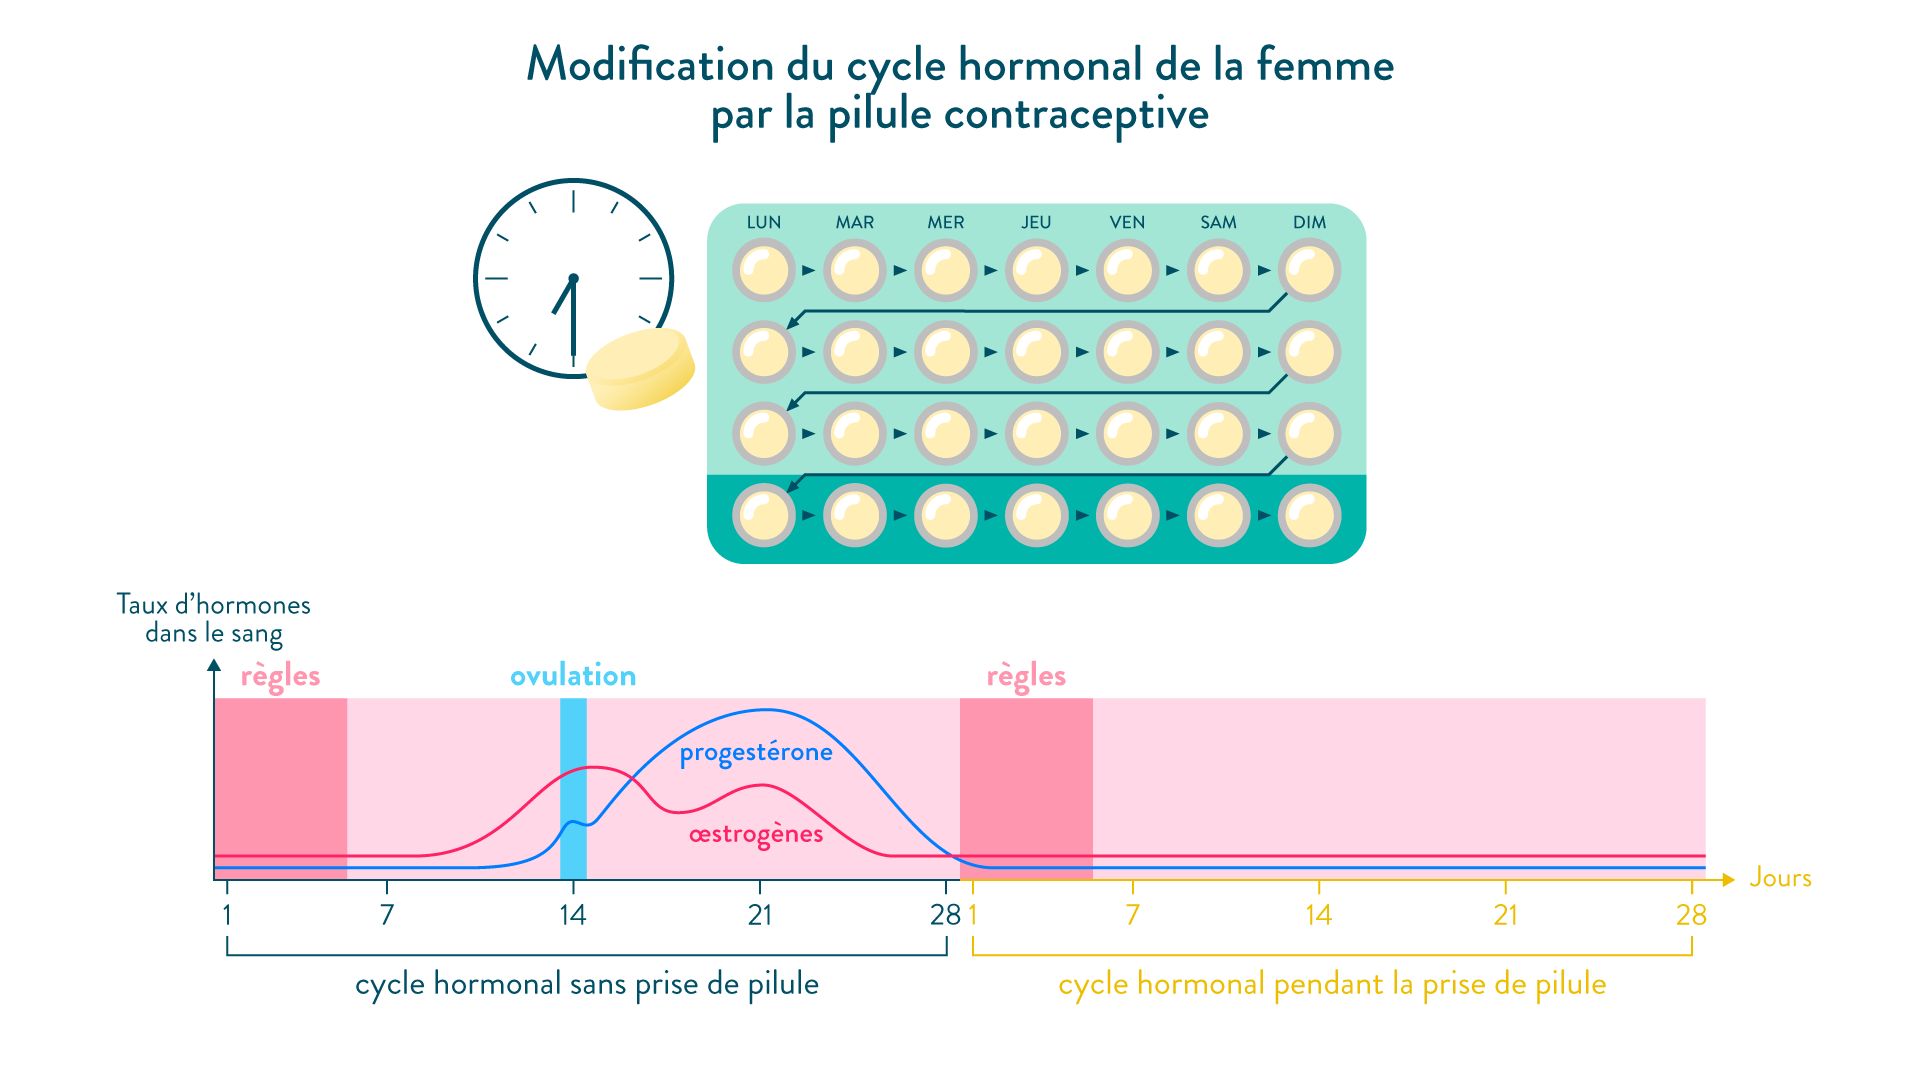 Modification du cycle hormonal de la femme par la pilule contraceptive